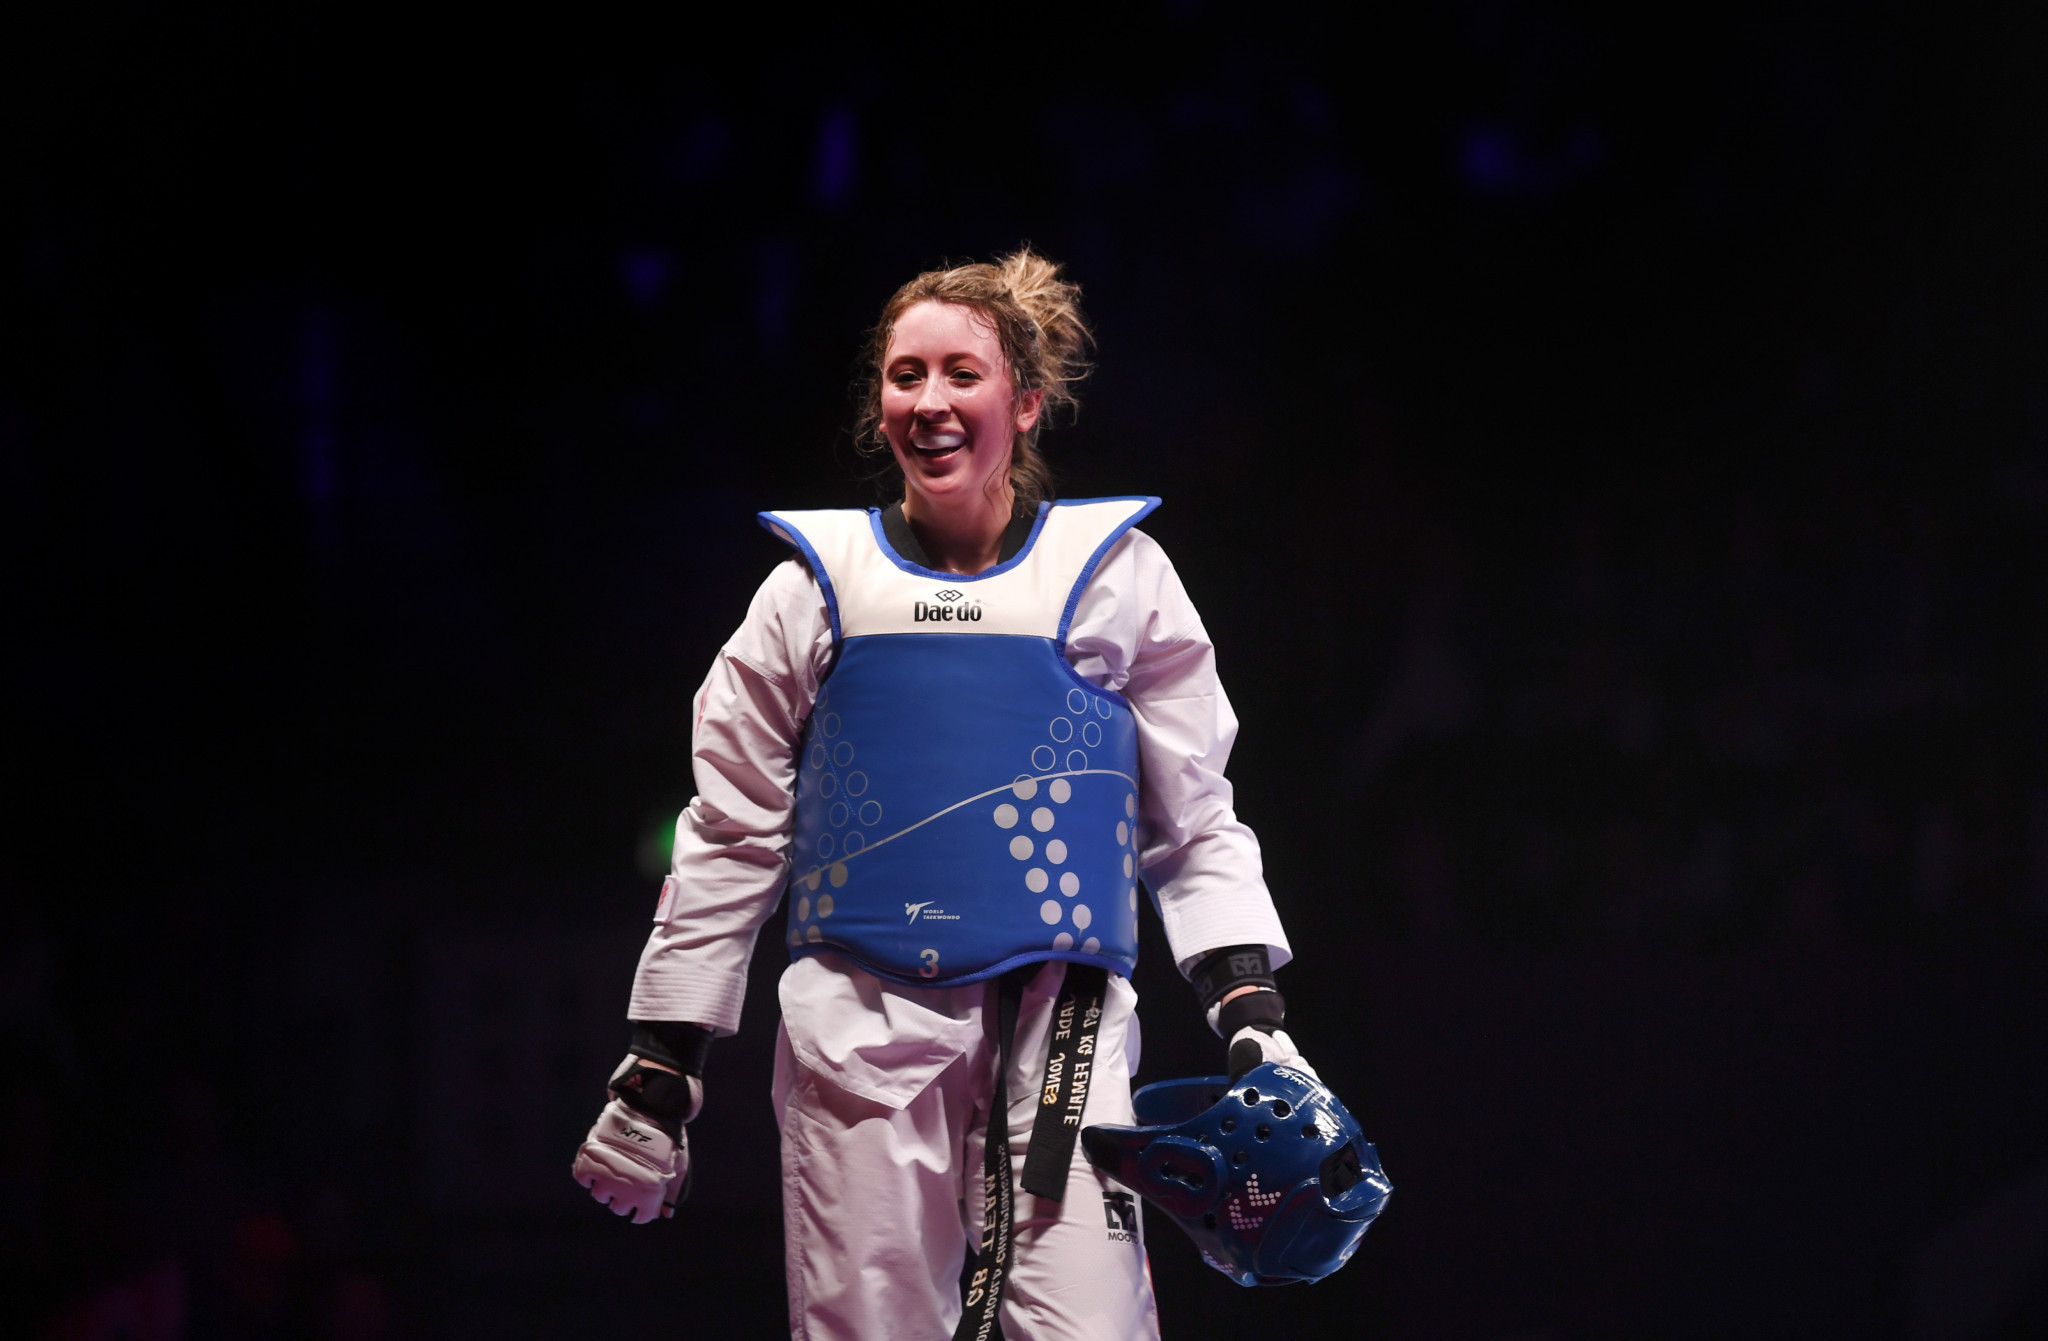 Olympic champion Jones retains European taekwondo title as Russia win two golds in Sofia